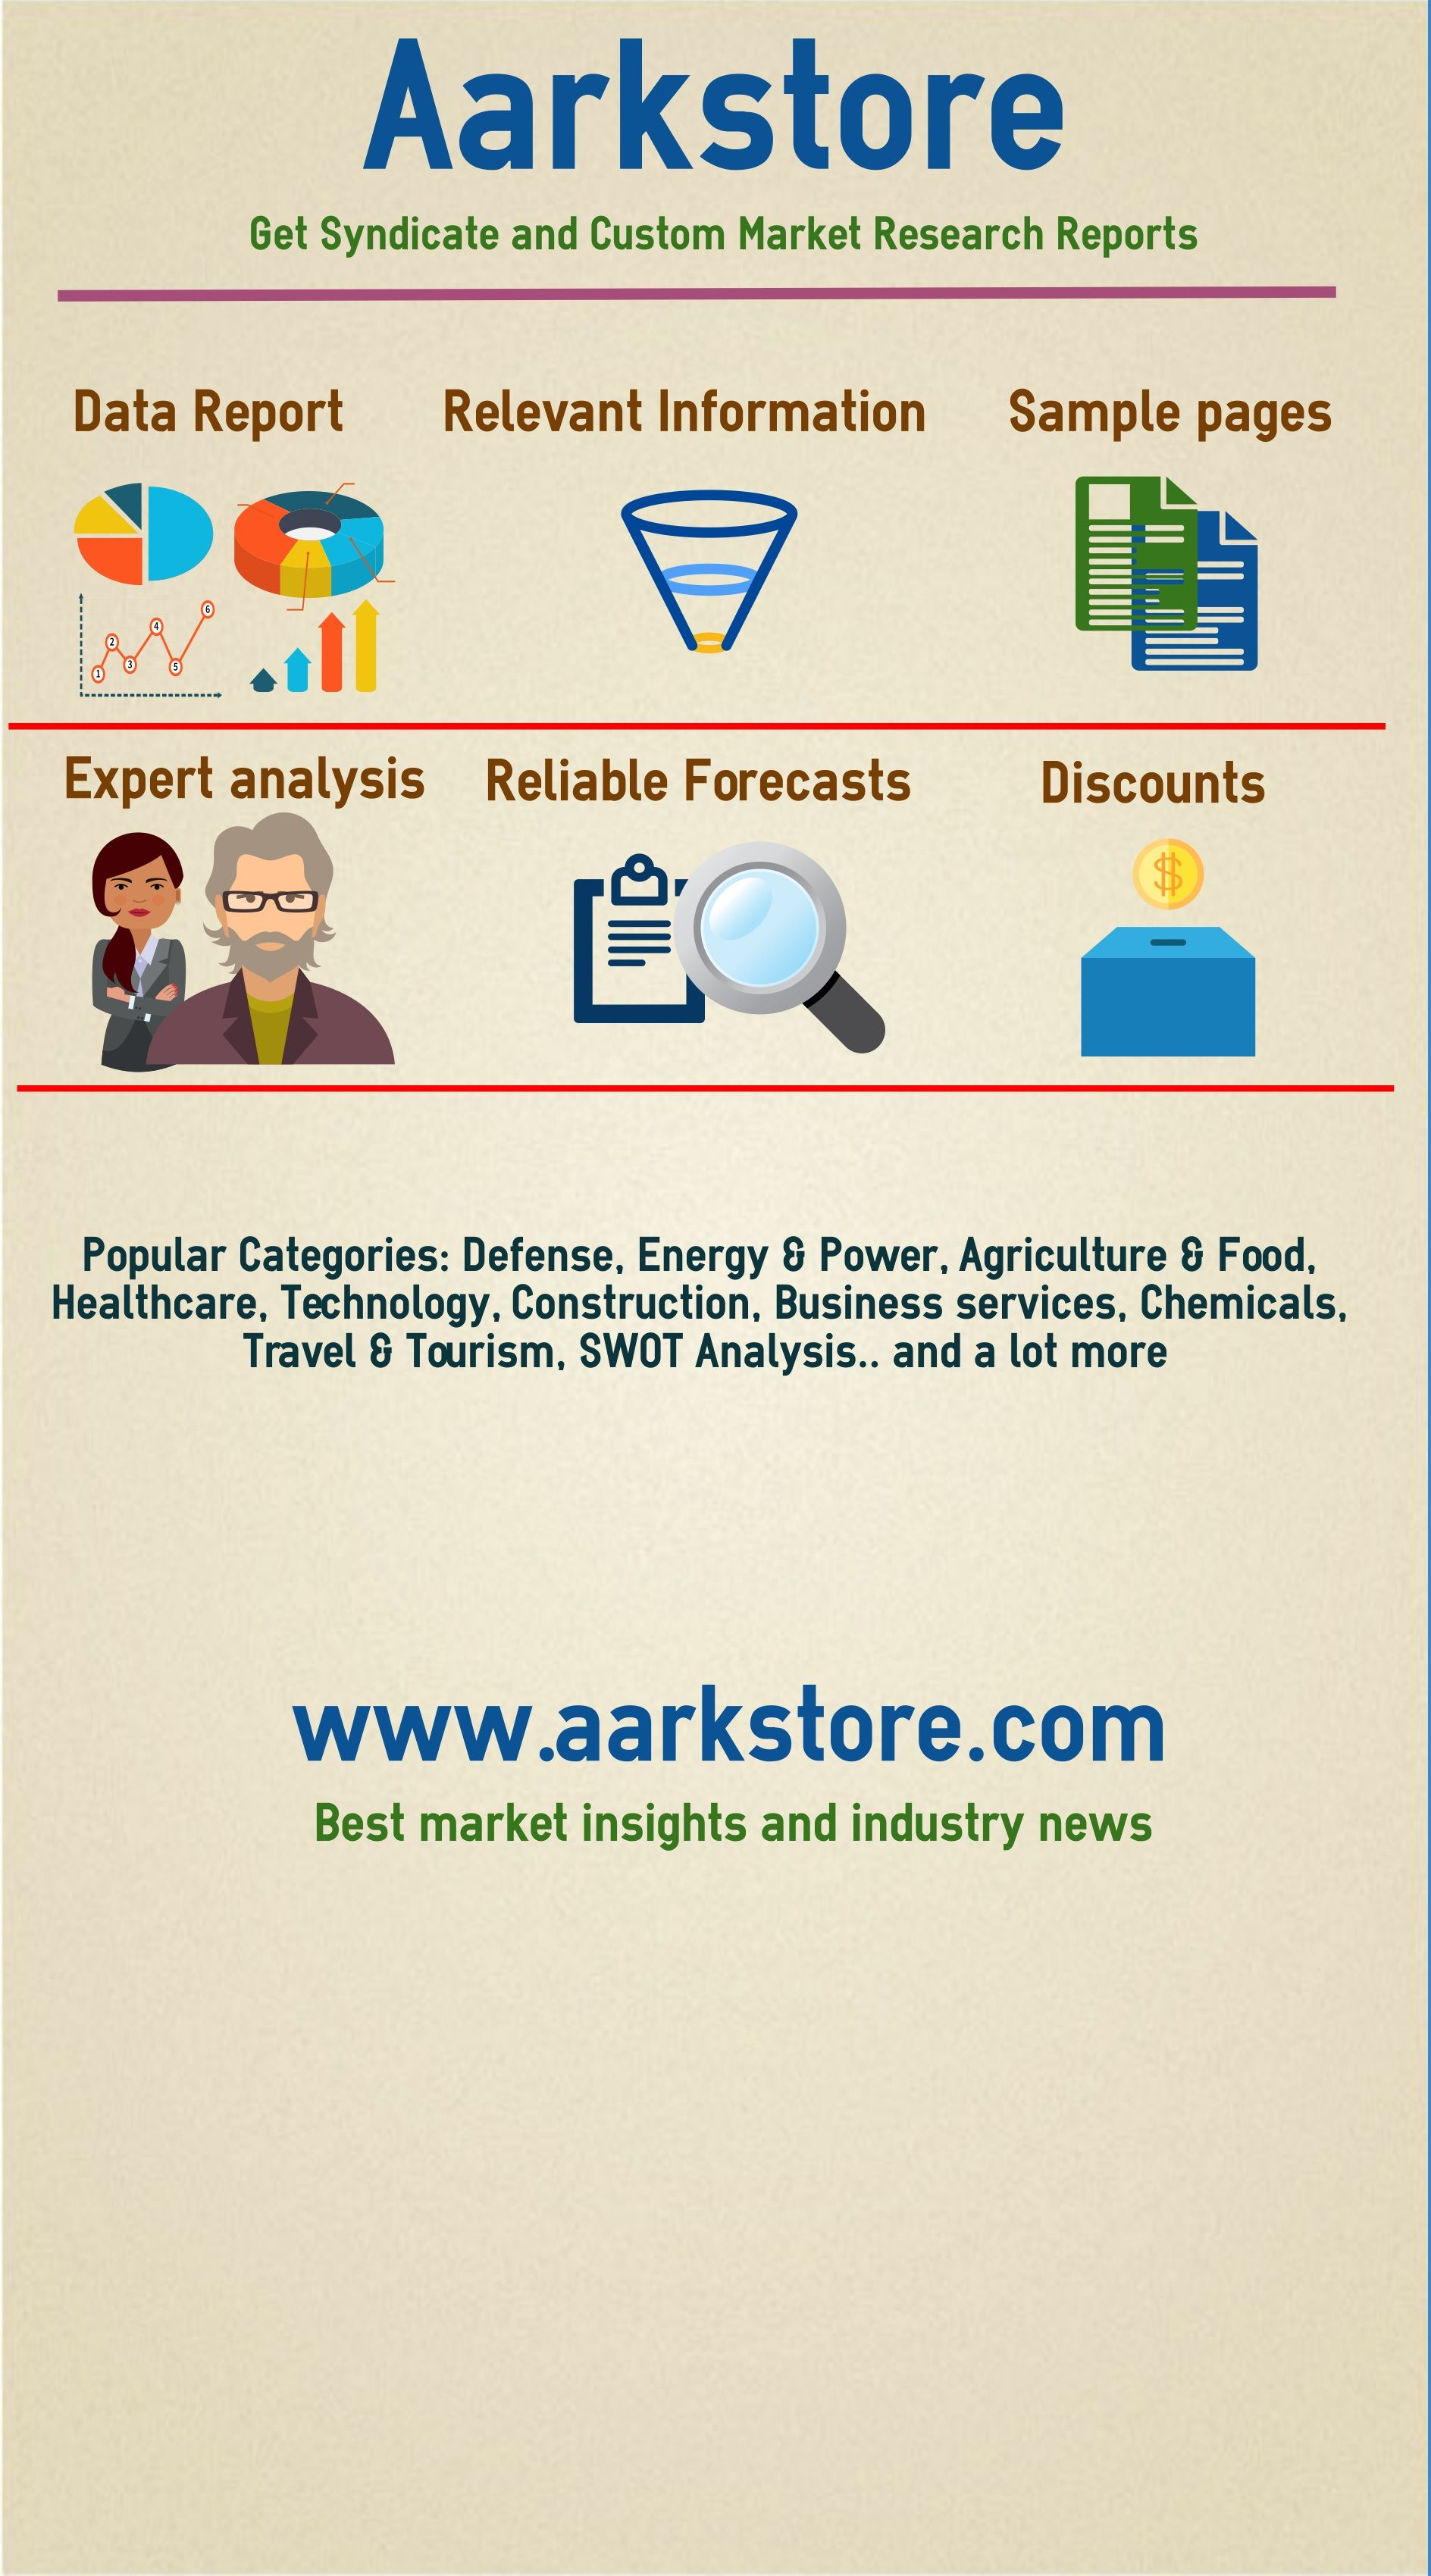 AarkstoreBest Market Insights And Industry News  Infographics